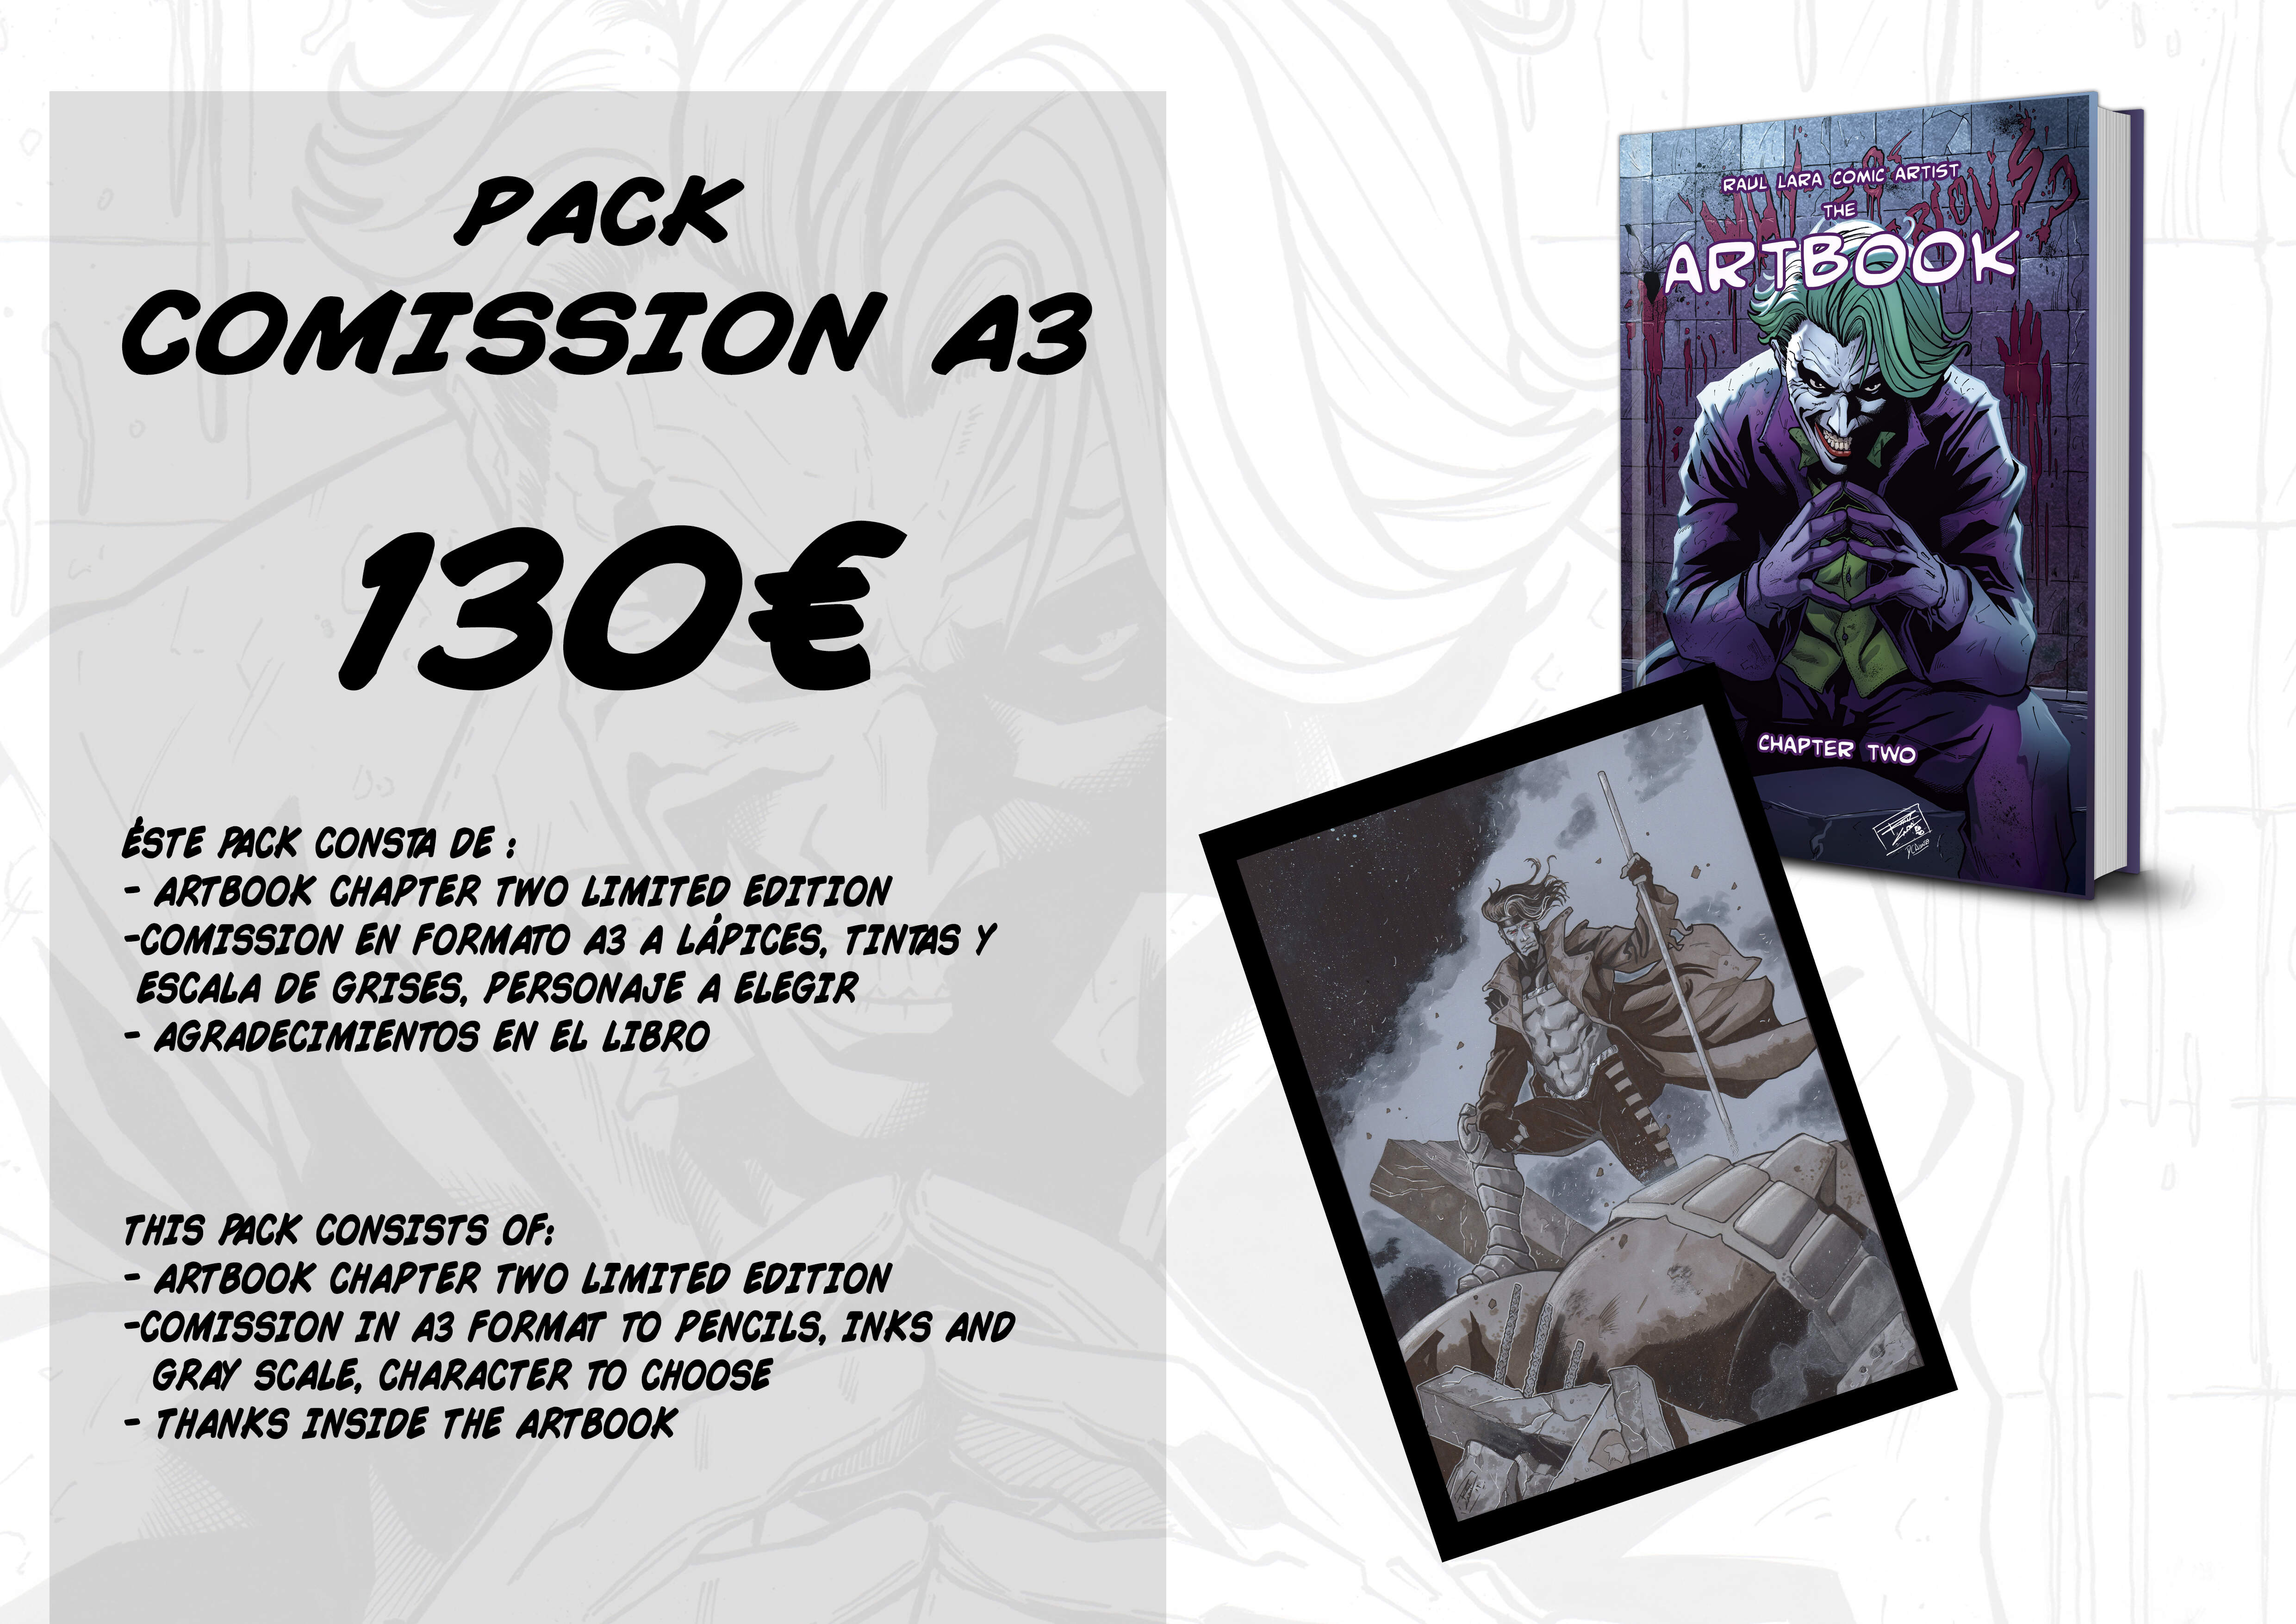 THE ARTBOOK CHAPTER TWO LIMITED EDITION  PACK 5